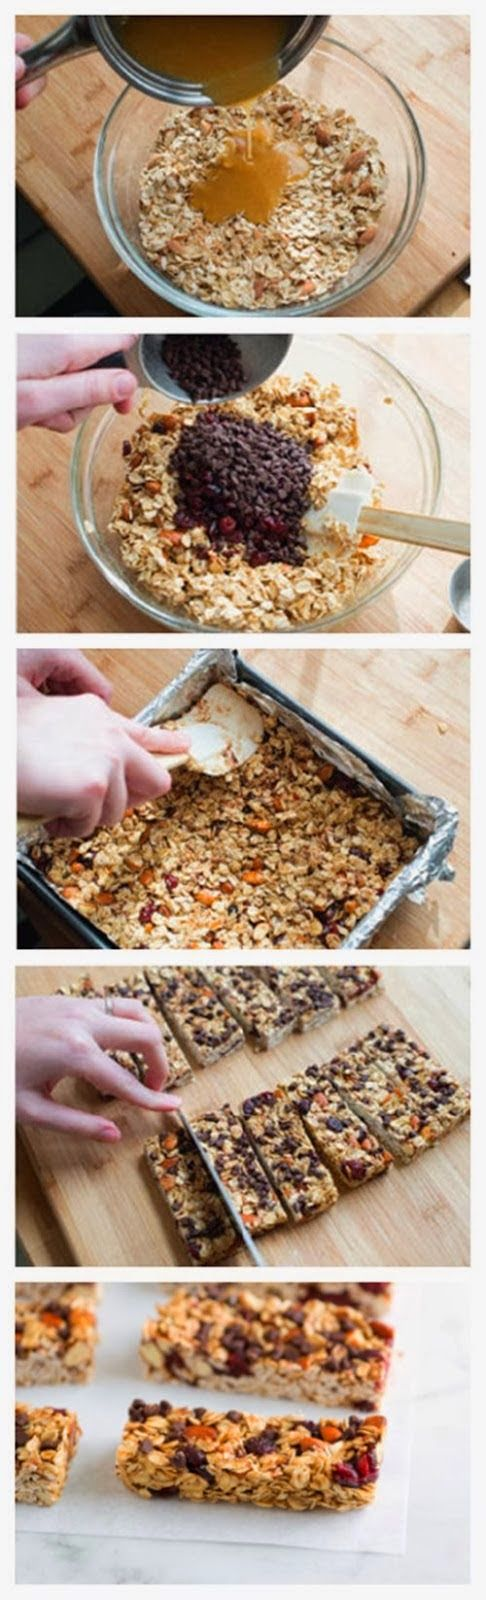 New Food & drink: Soft and Chewy Granola Bars Recipe